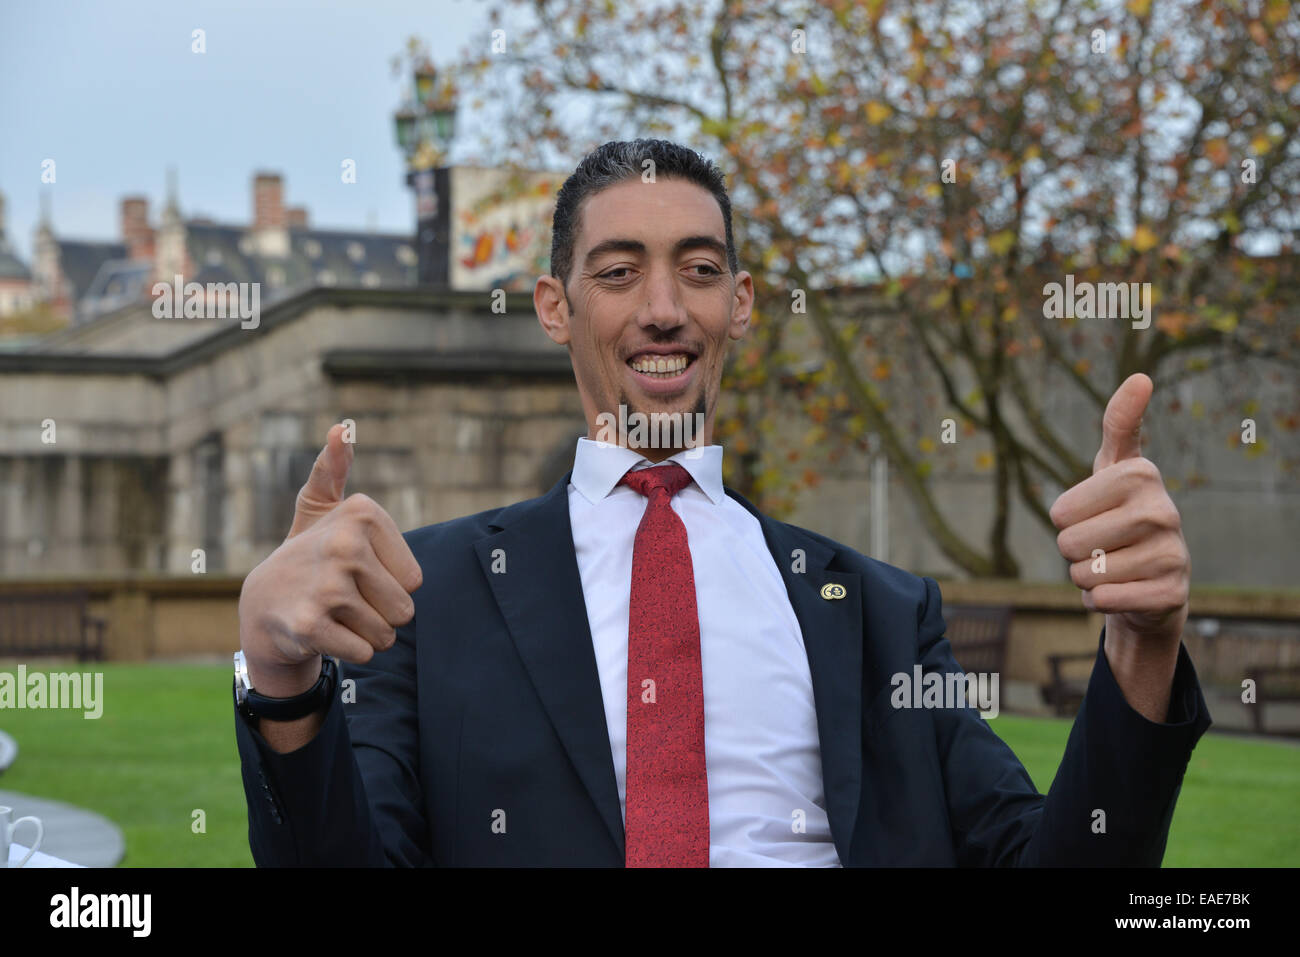 worlds tallest ma stock photos worlds tallest ma stock images alamy